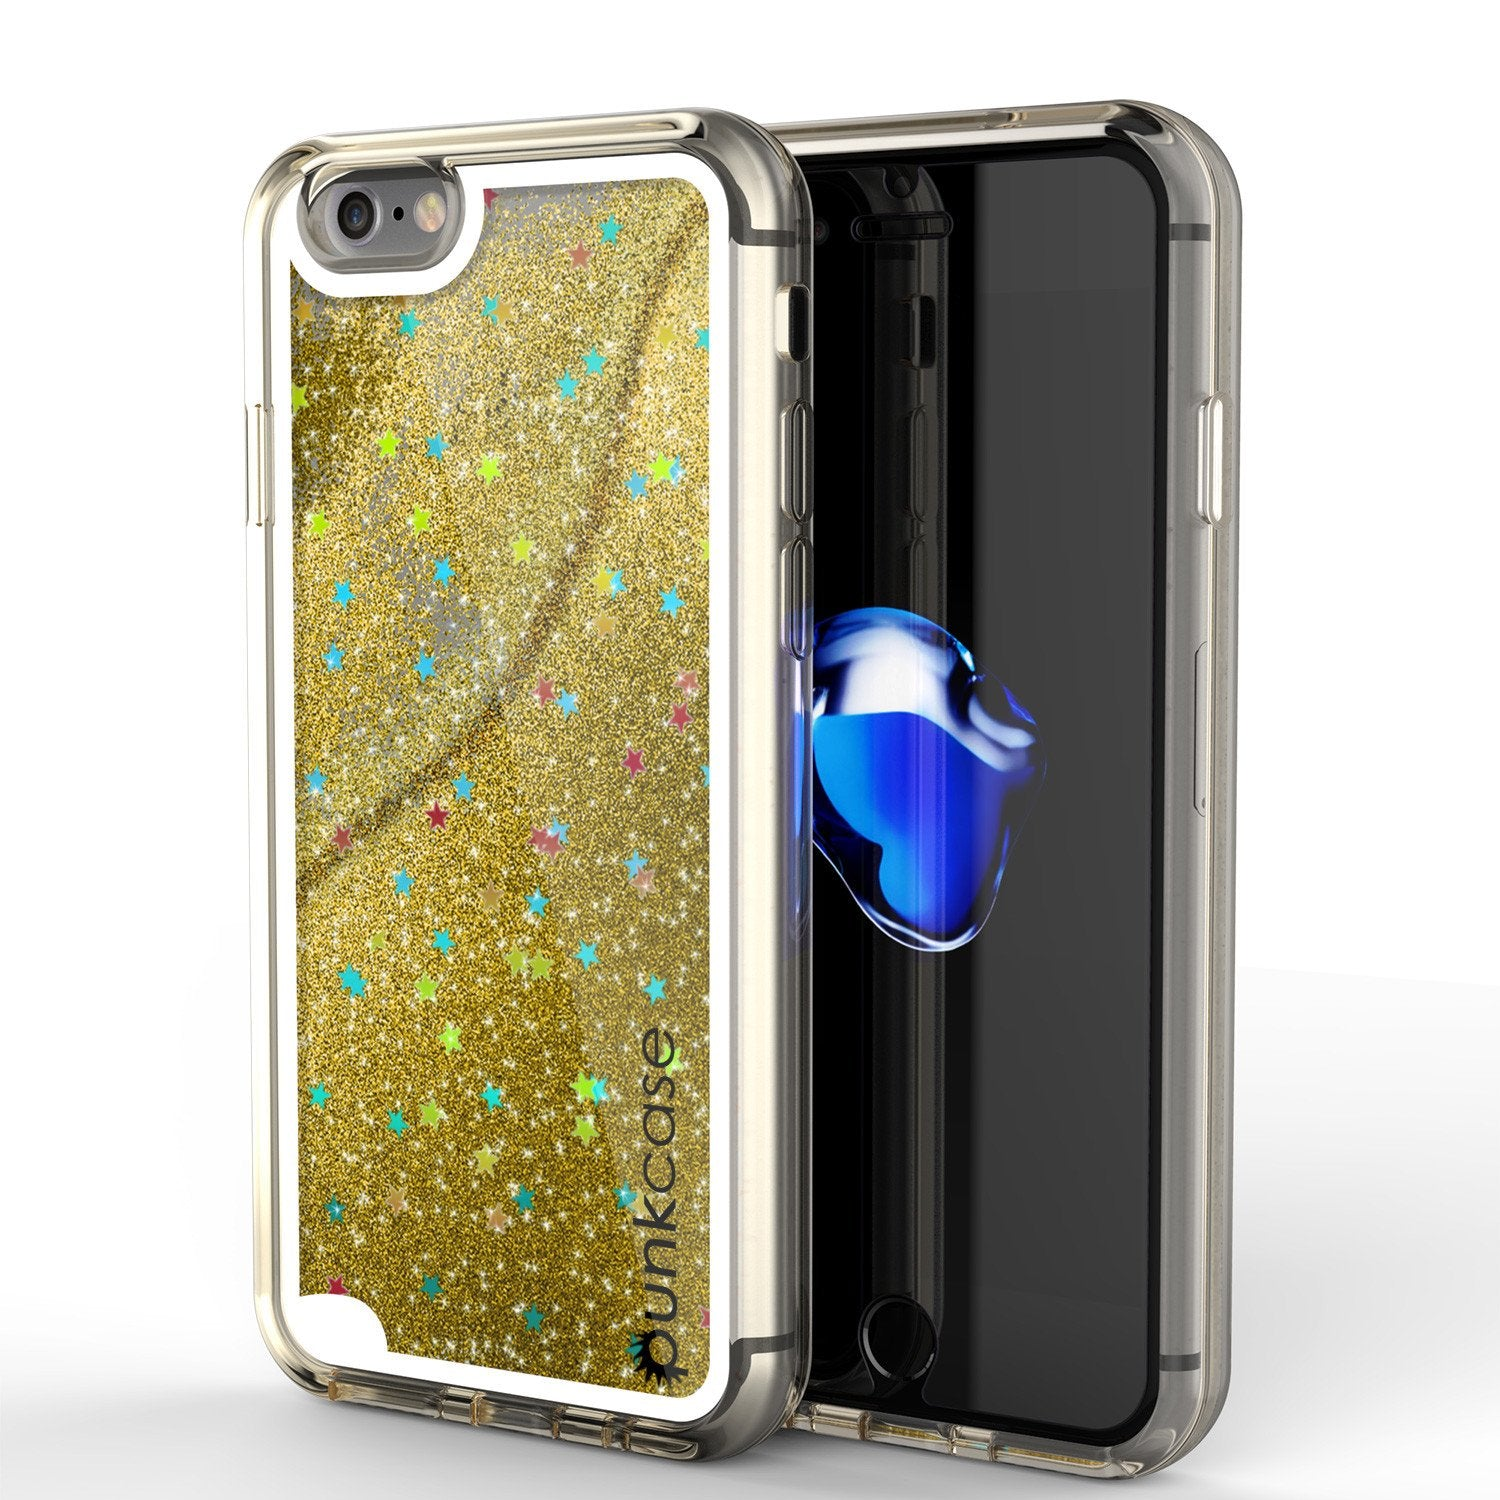 best service 8a92a 4eb45 iPhone 8 Case, PunkCase LIQUID Gold Series, Protective Dual Layer Floating  Glitter Cover